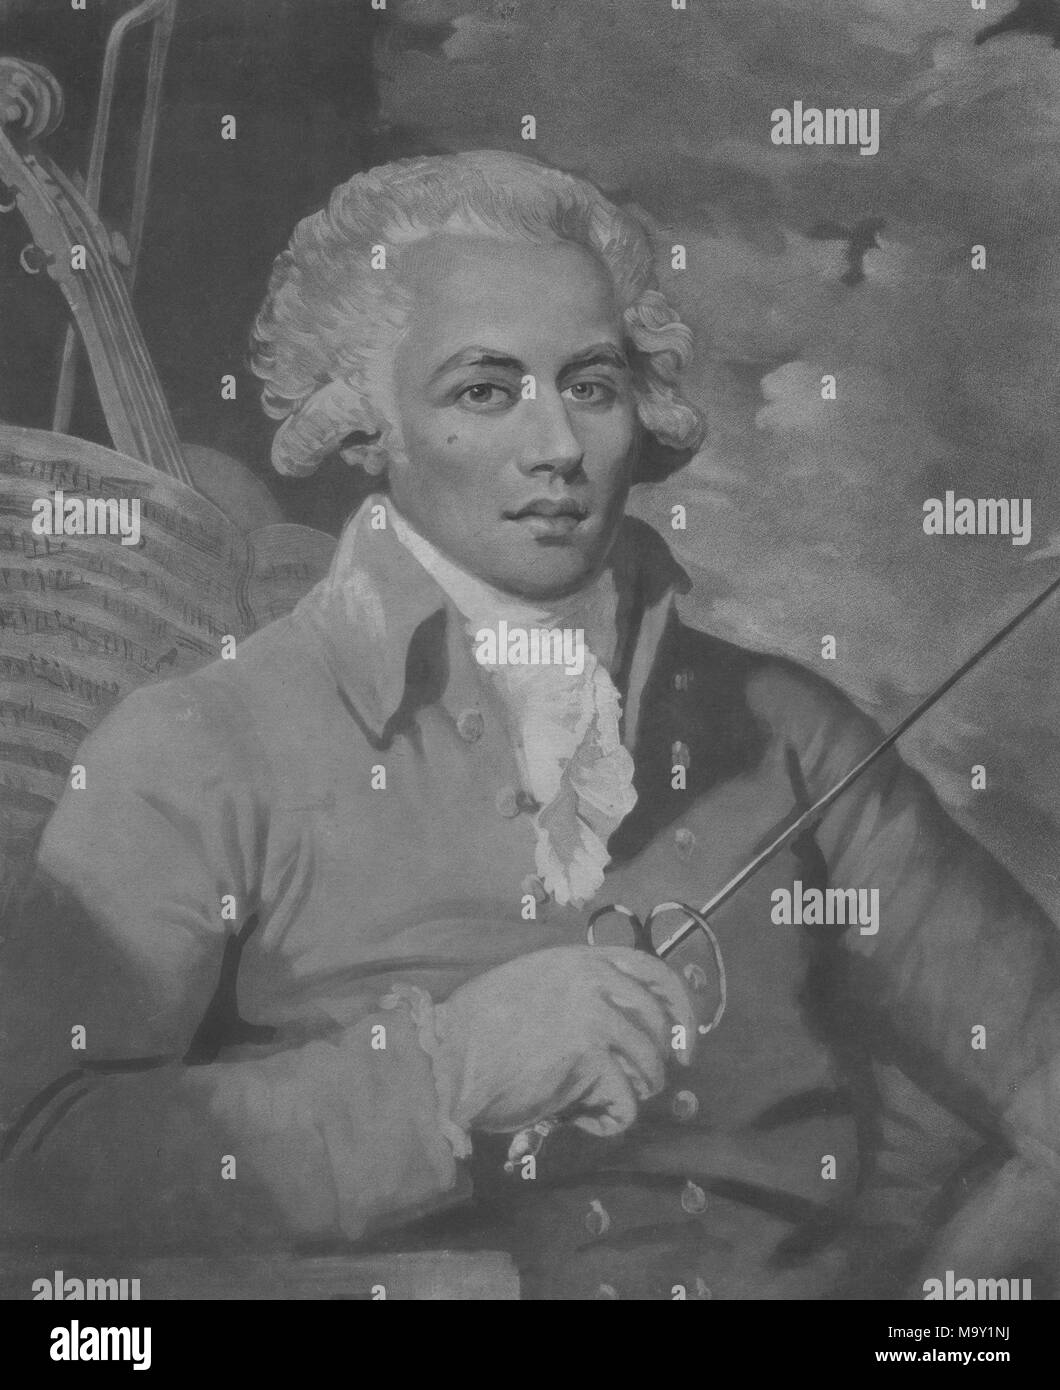 Portrait of Monsieur de St George, a prominent musician born from the union of a plantation owner and his African slave, 1788. From the New York Public Library. () - Stock Image